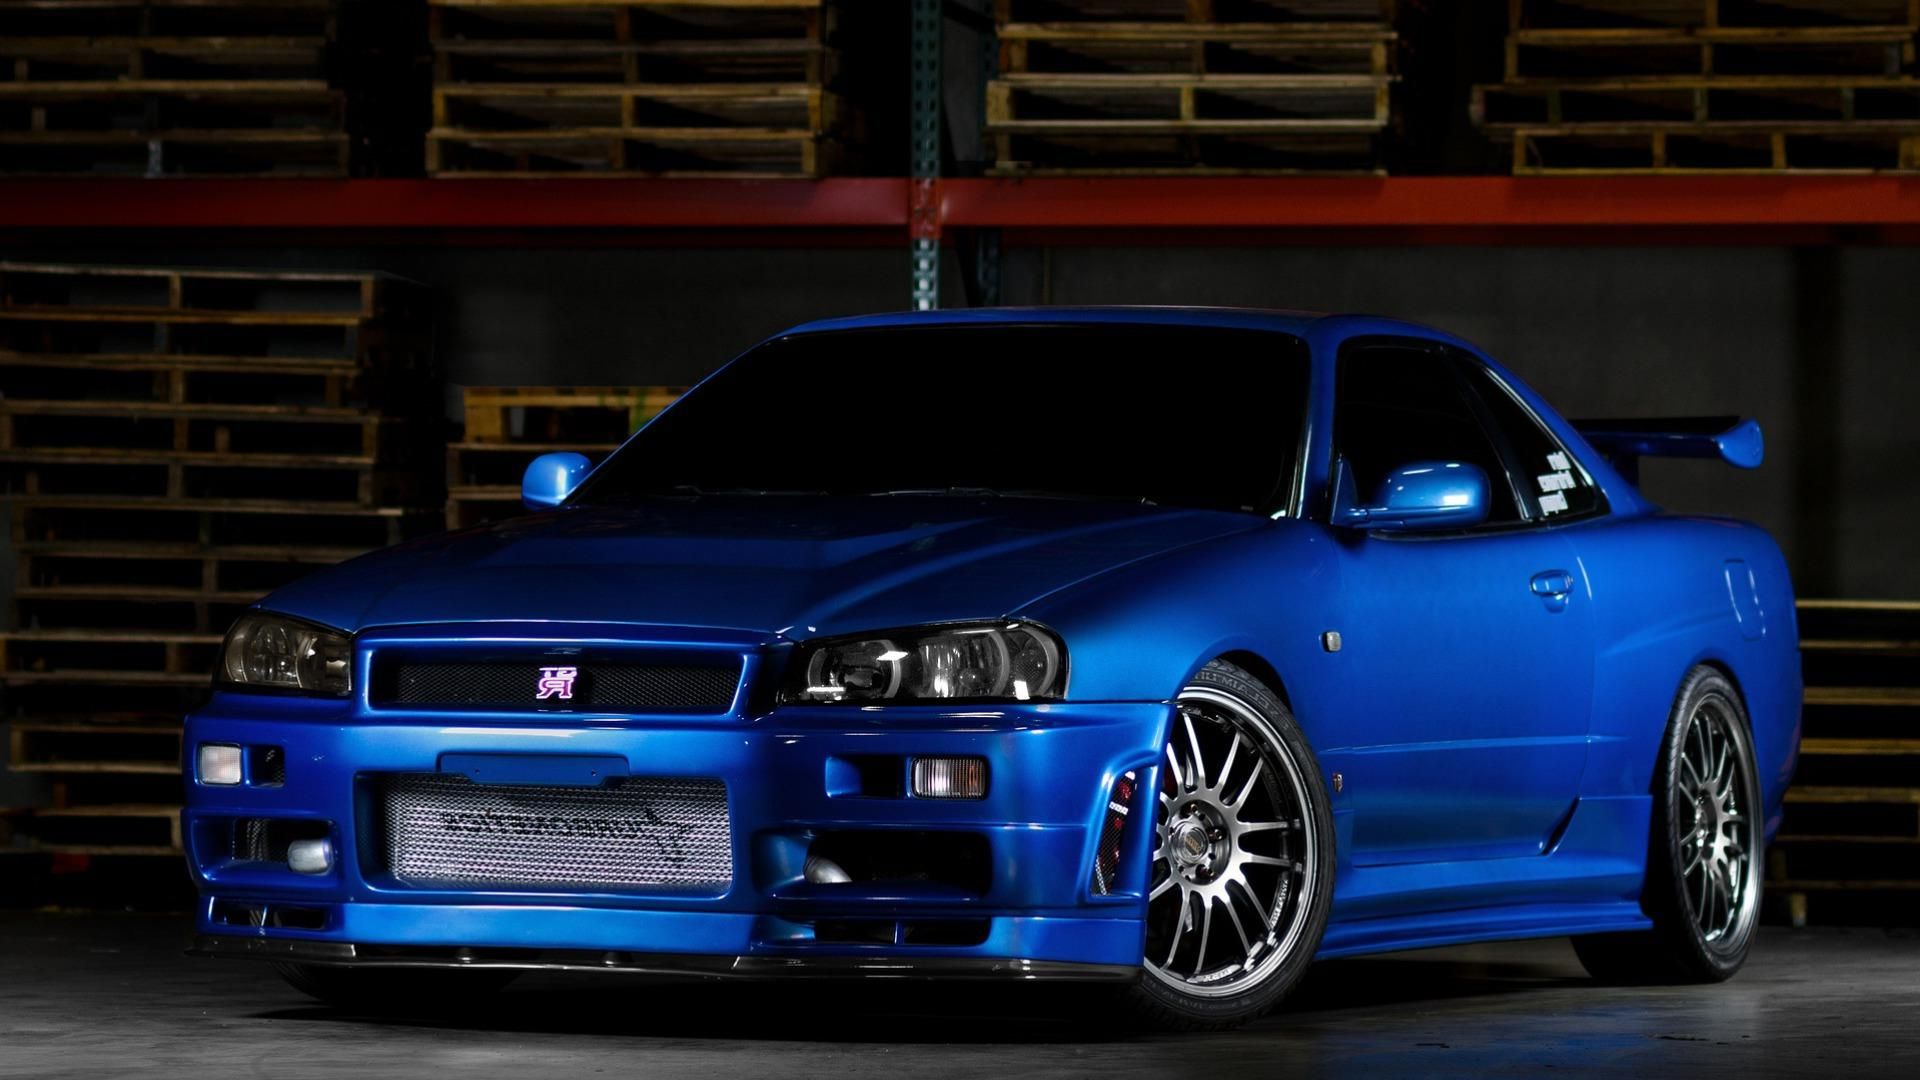 nissan skyline gtr r34 desktop hd wallpapers | jdm | pinterest